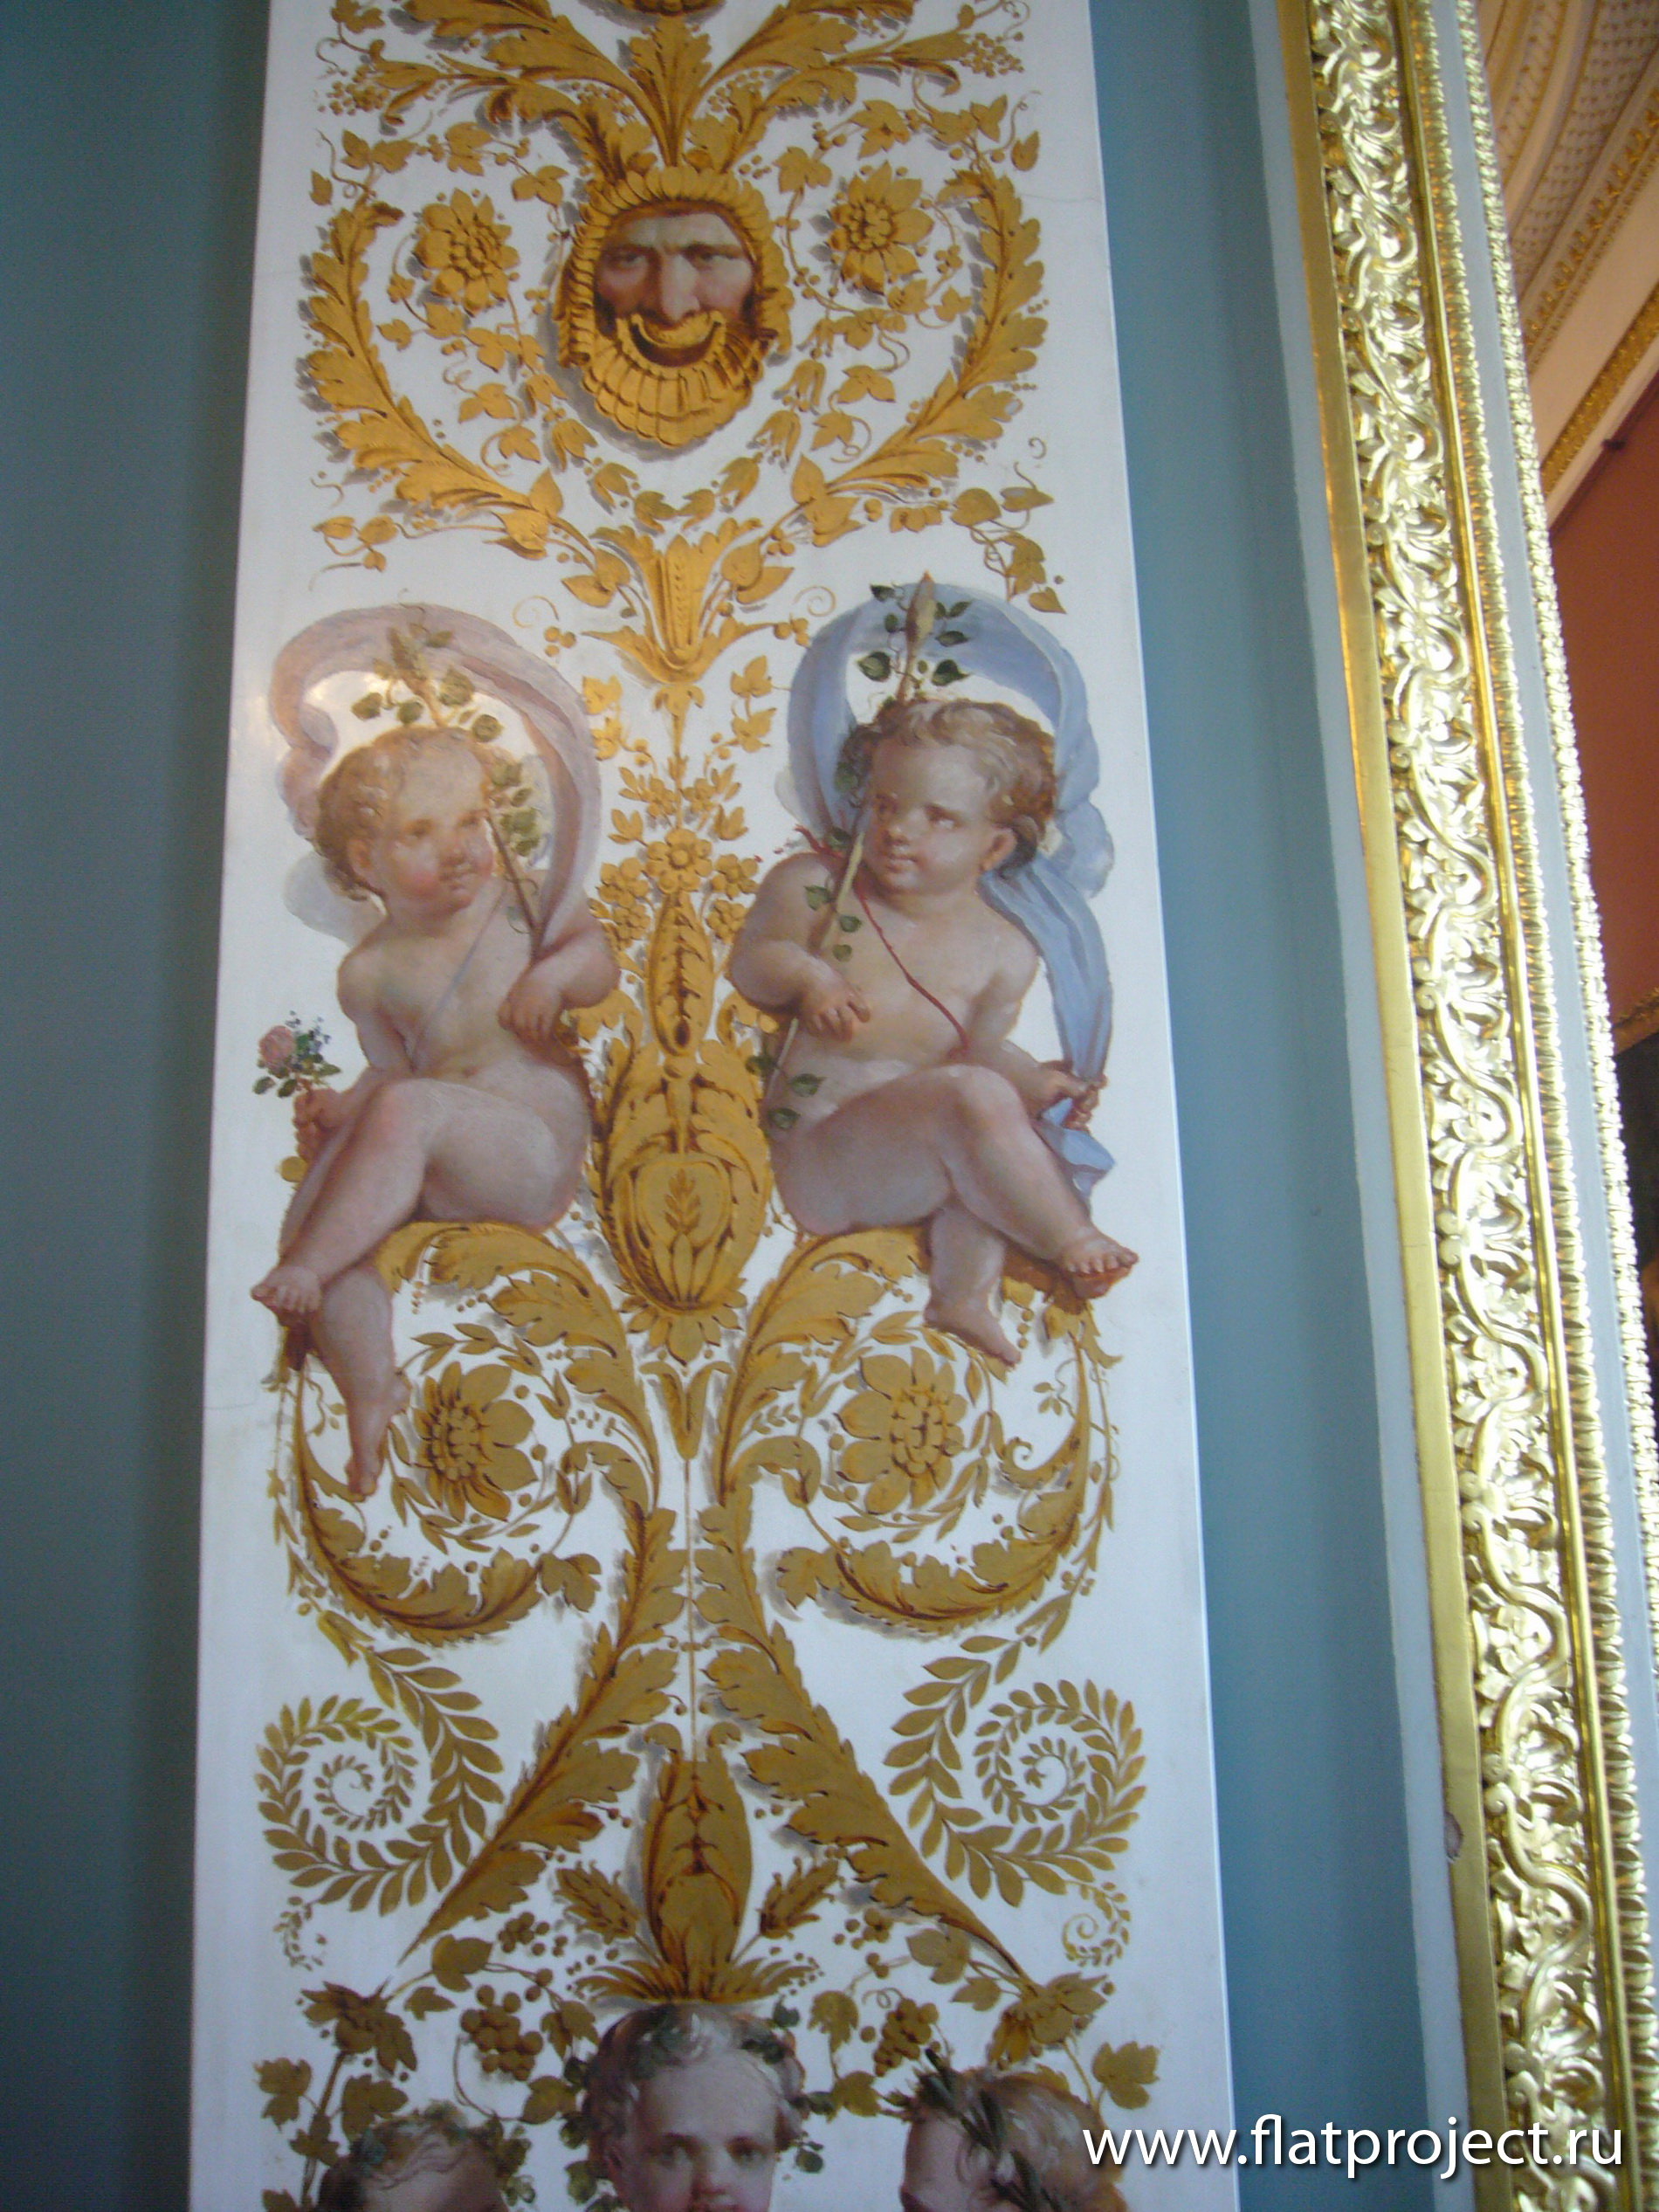 The State Russian museum interiors – photo 8